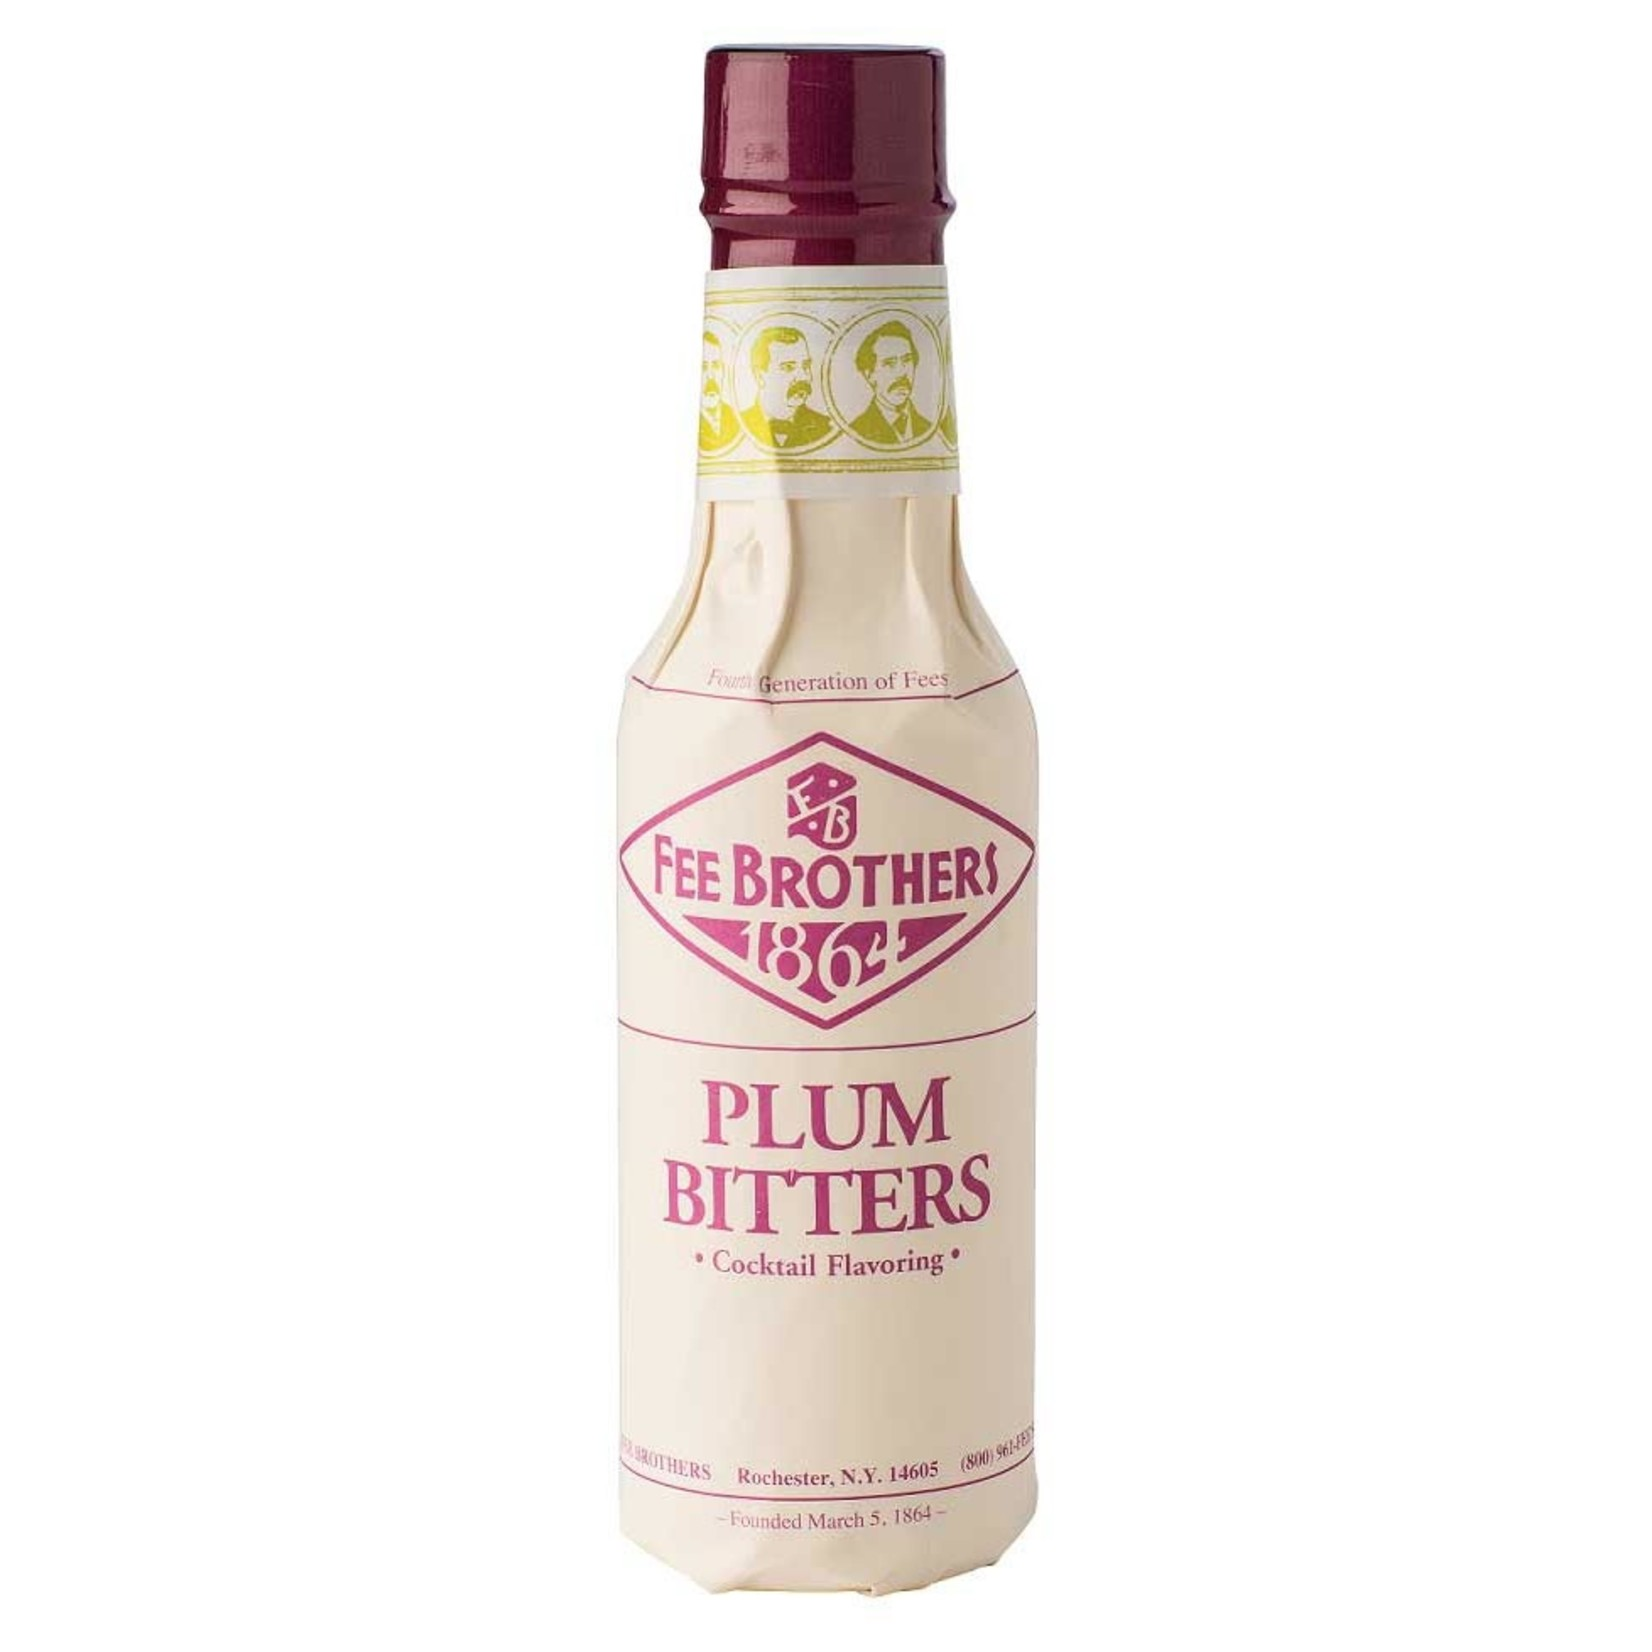 Fee Brothers Fee Brothers Bitters Plum